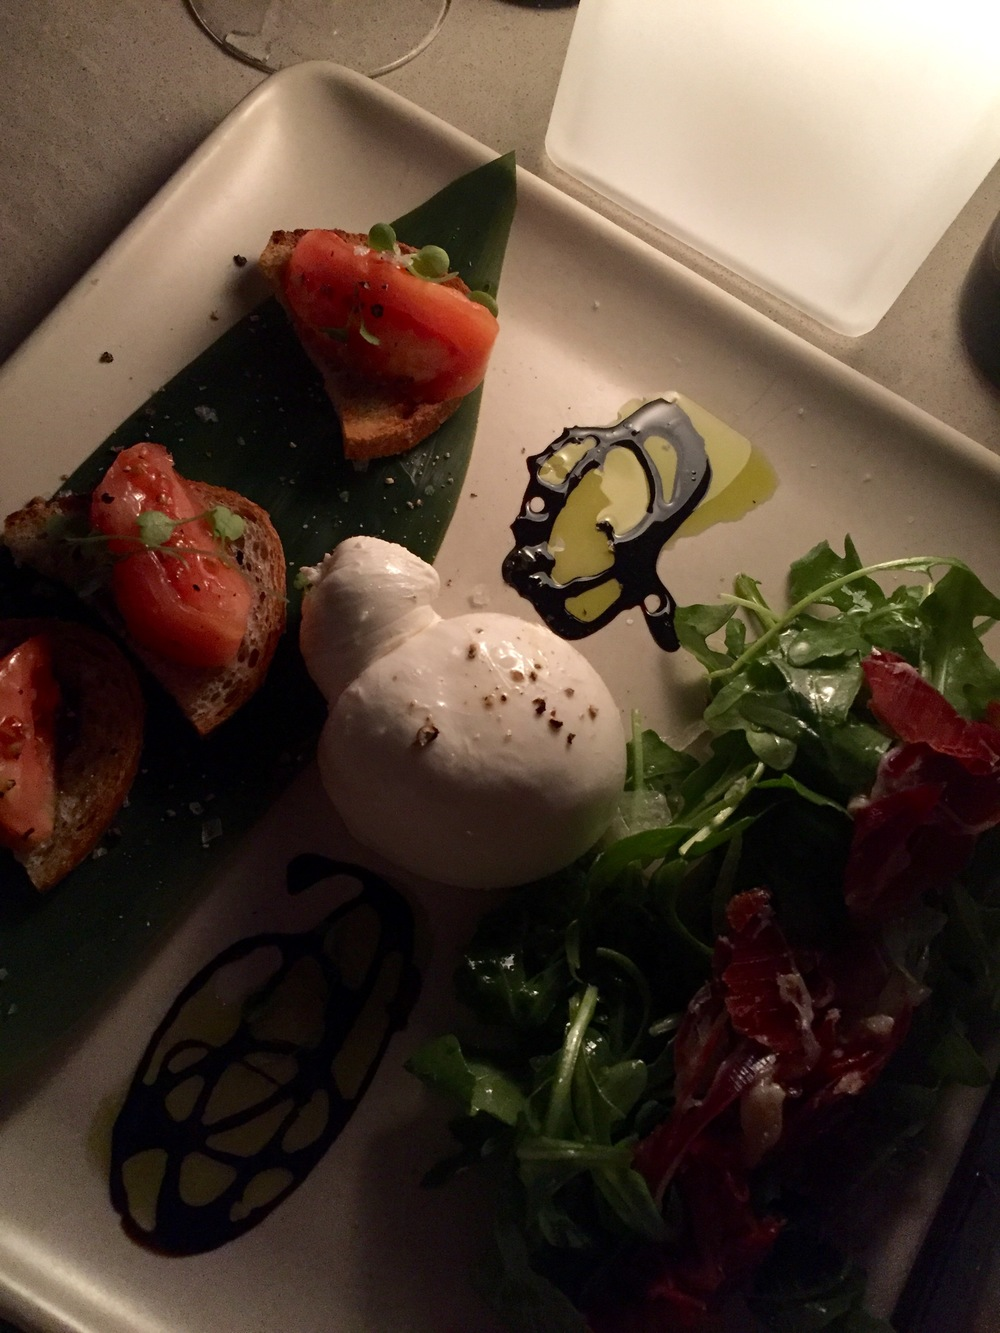 my meal: burrata with pata negra and tomato toast with arugula